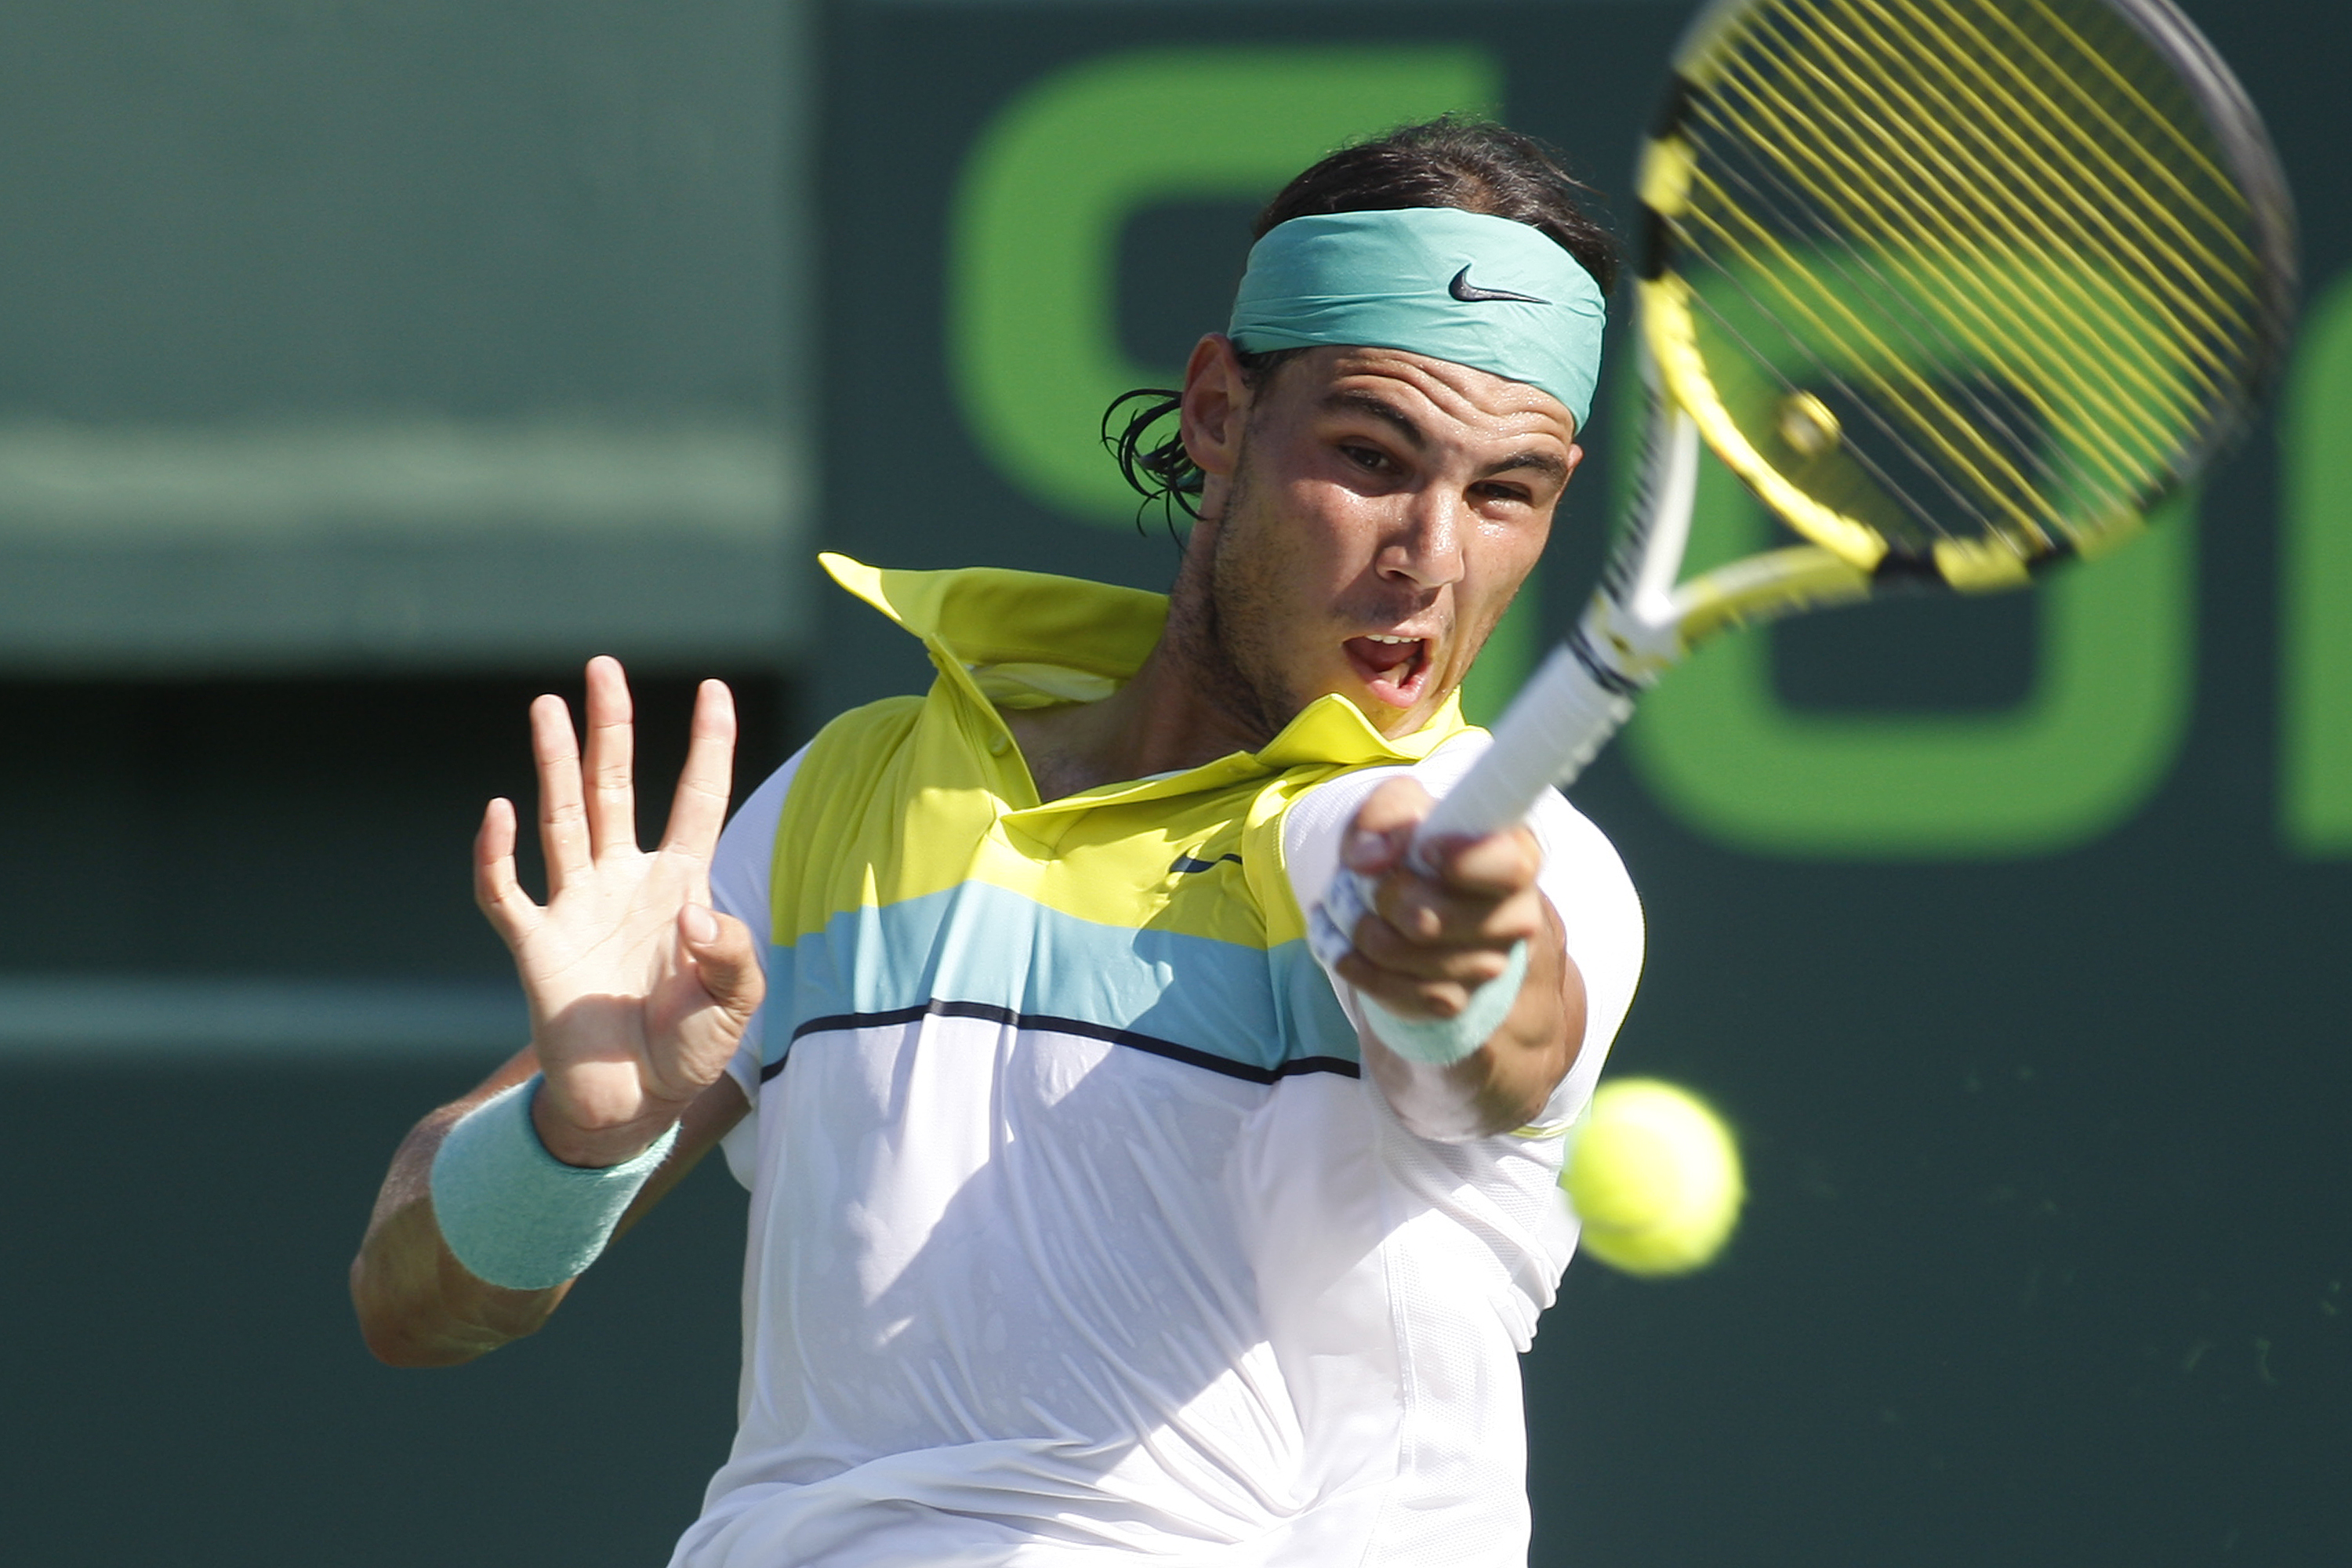 At this point it became clear that collars were not going to work on Rafa.